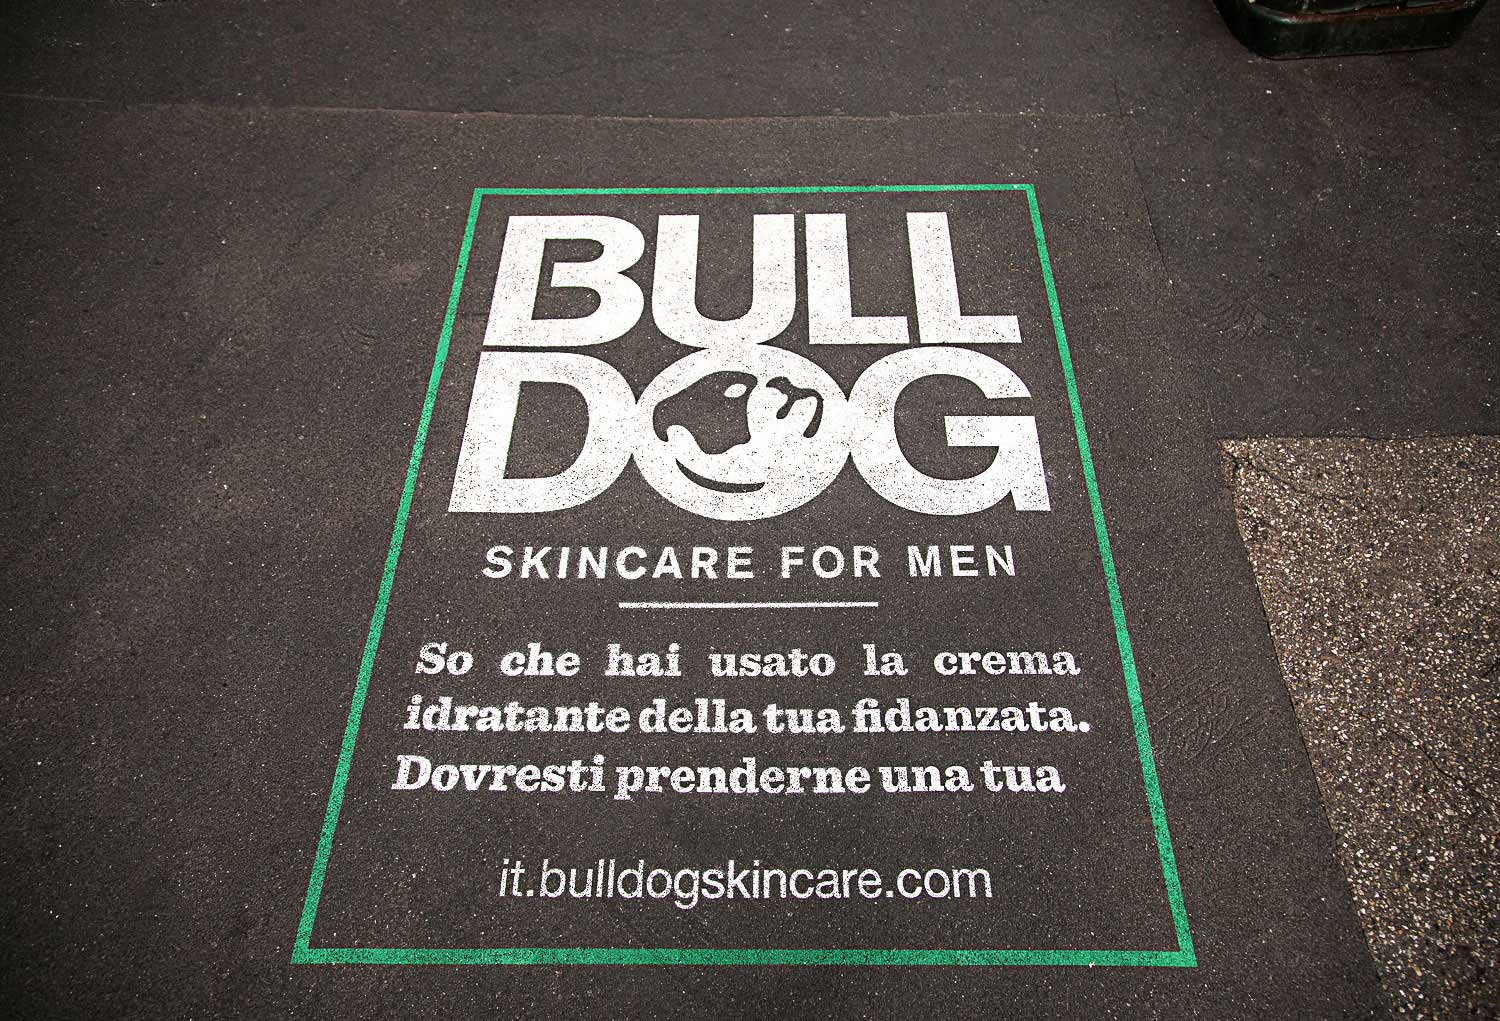 street marketing bulldog skincare